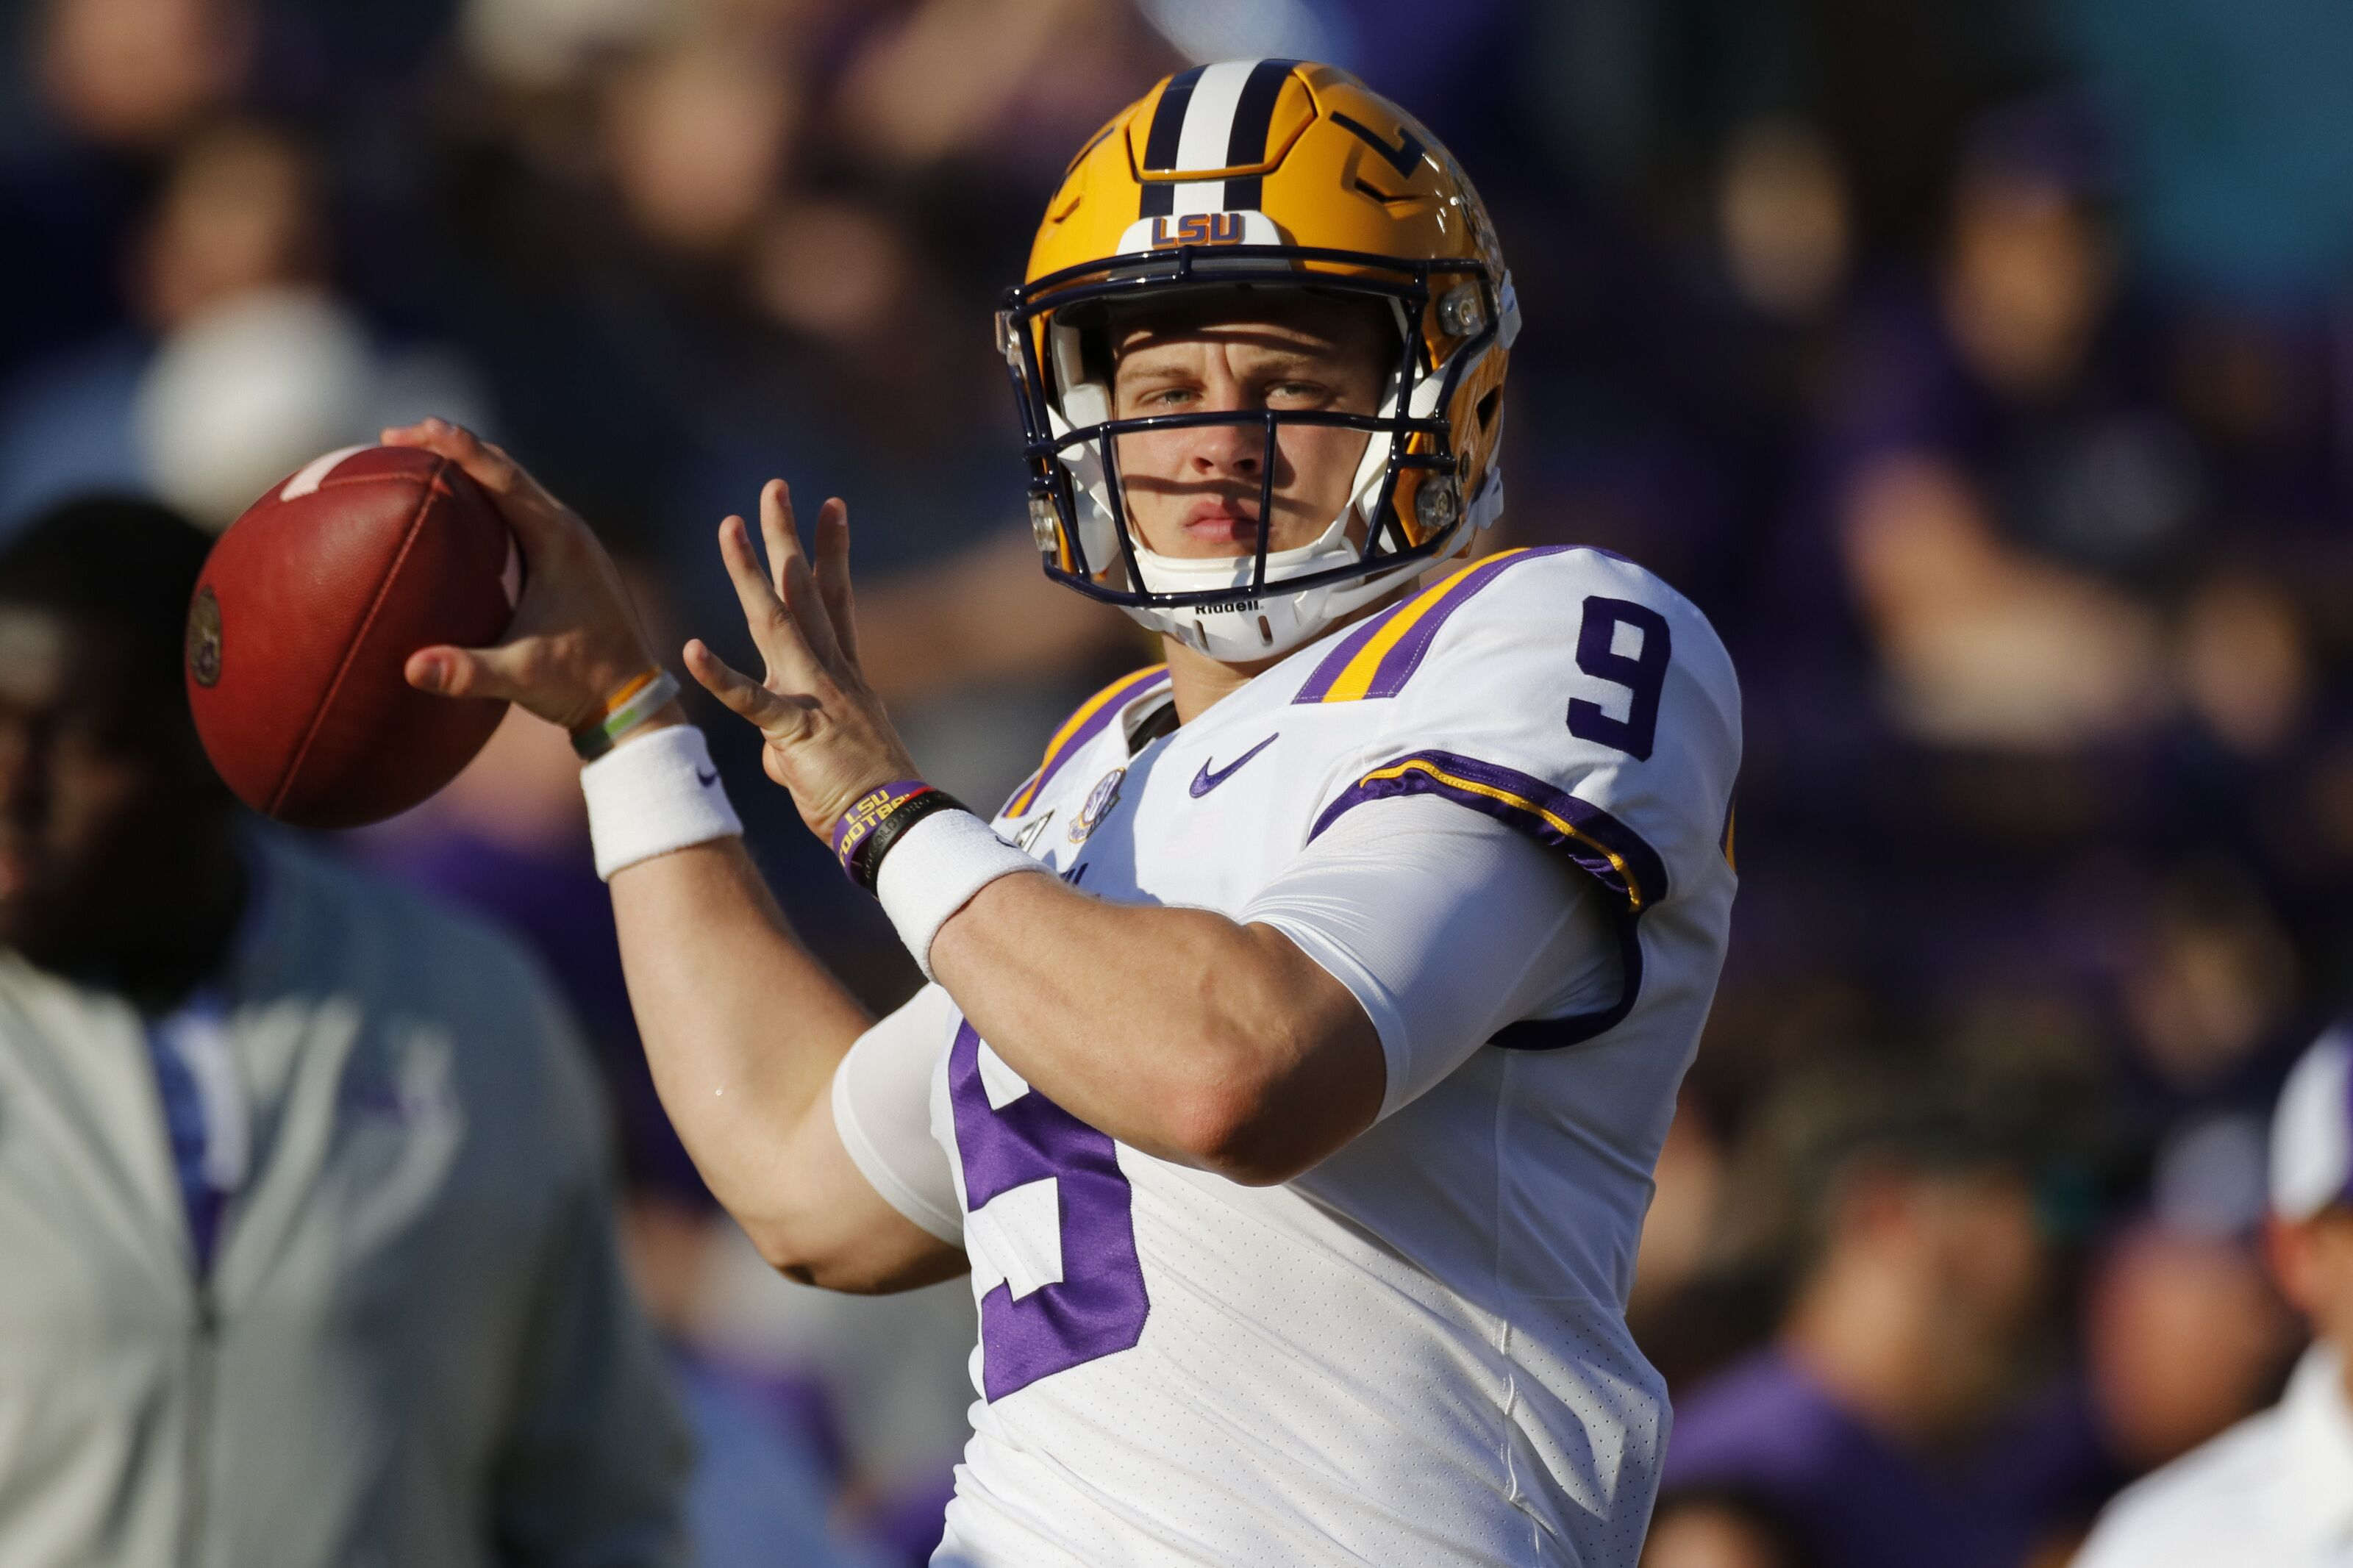 The 2 Joes: How Burrow and Brady transformed LSU into SEC contenders